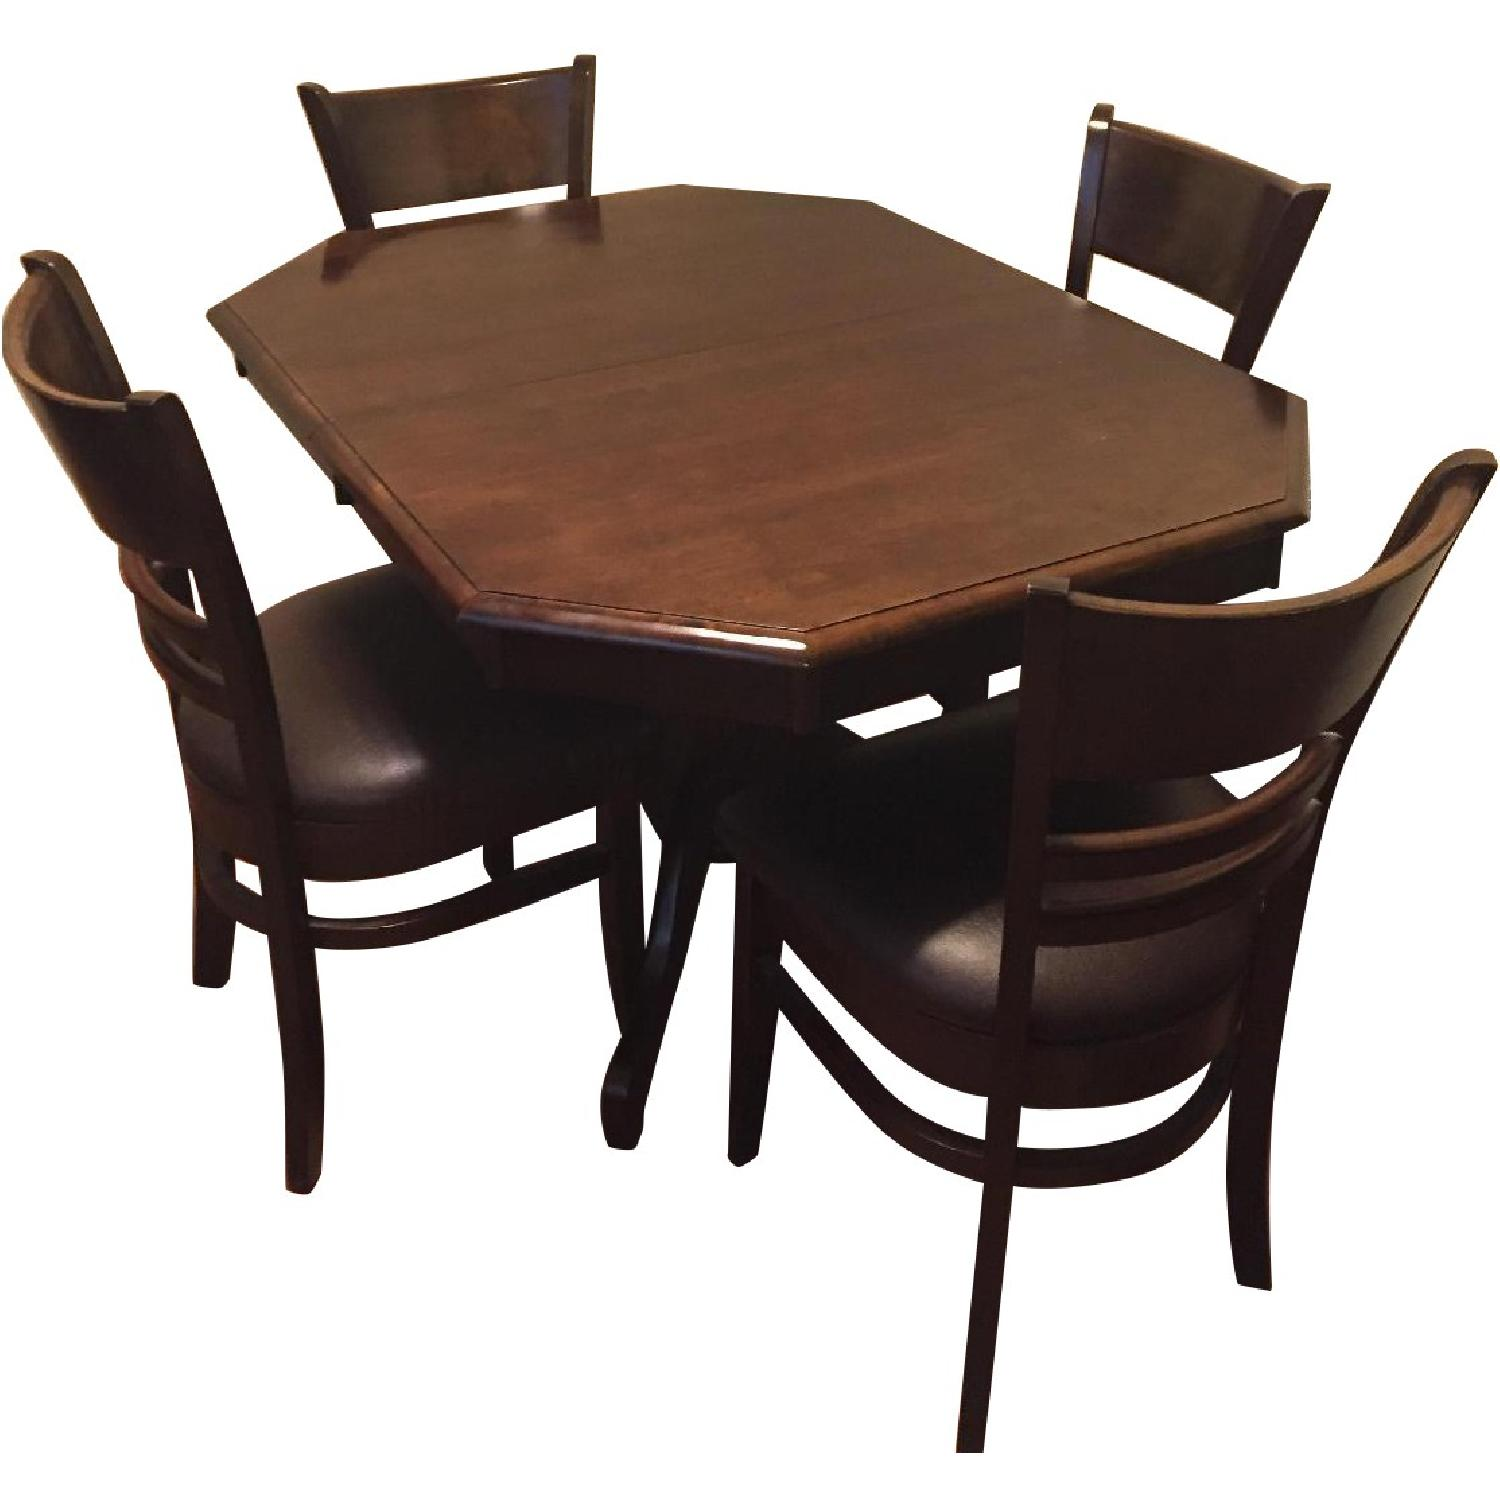 Hardwood Extension Dining Table w/ 4 Wooden Chairs